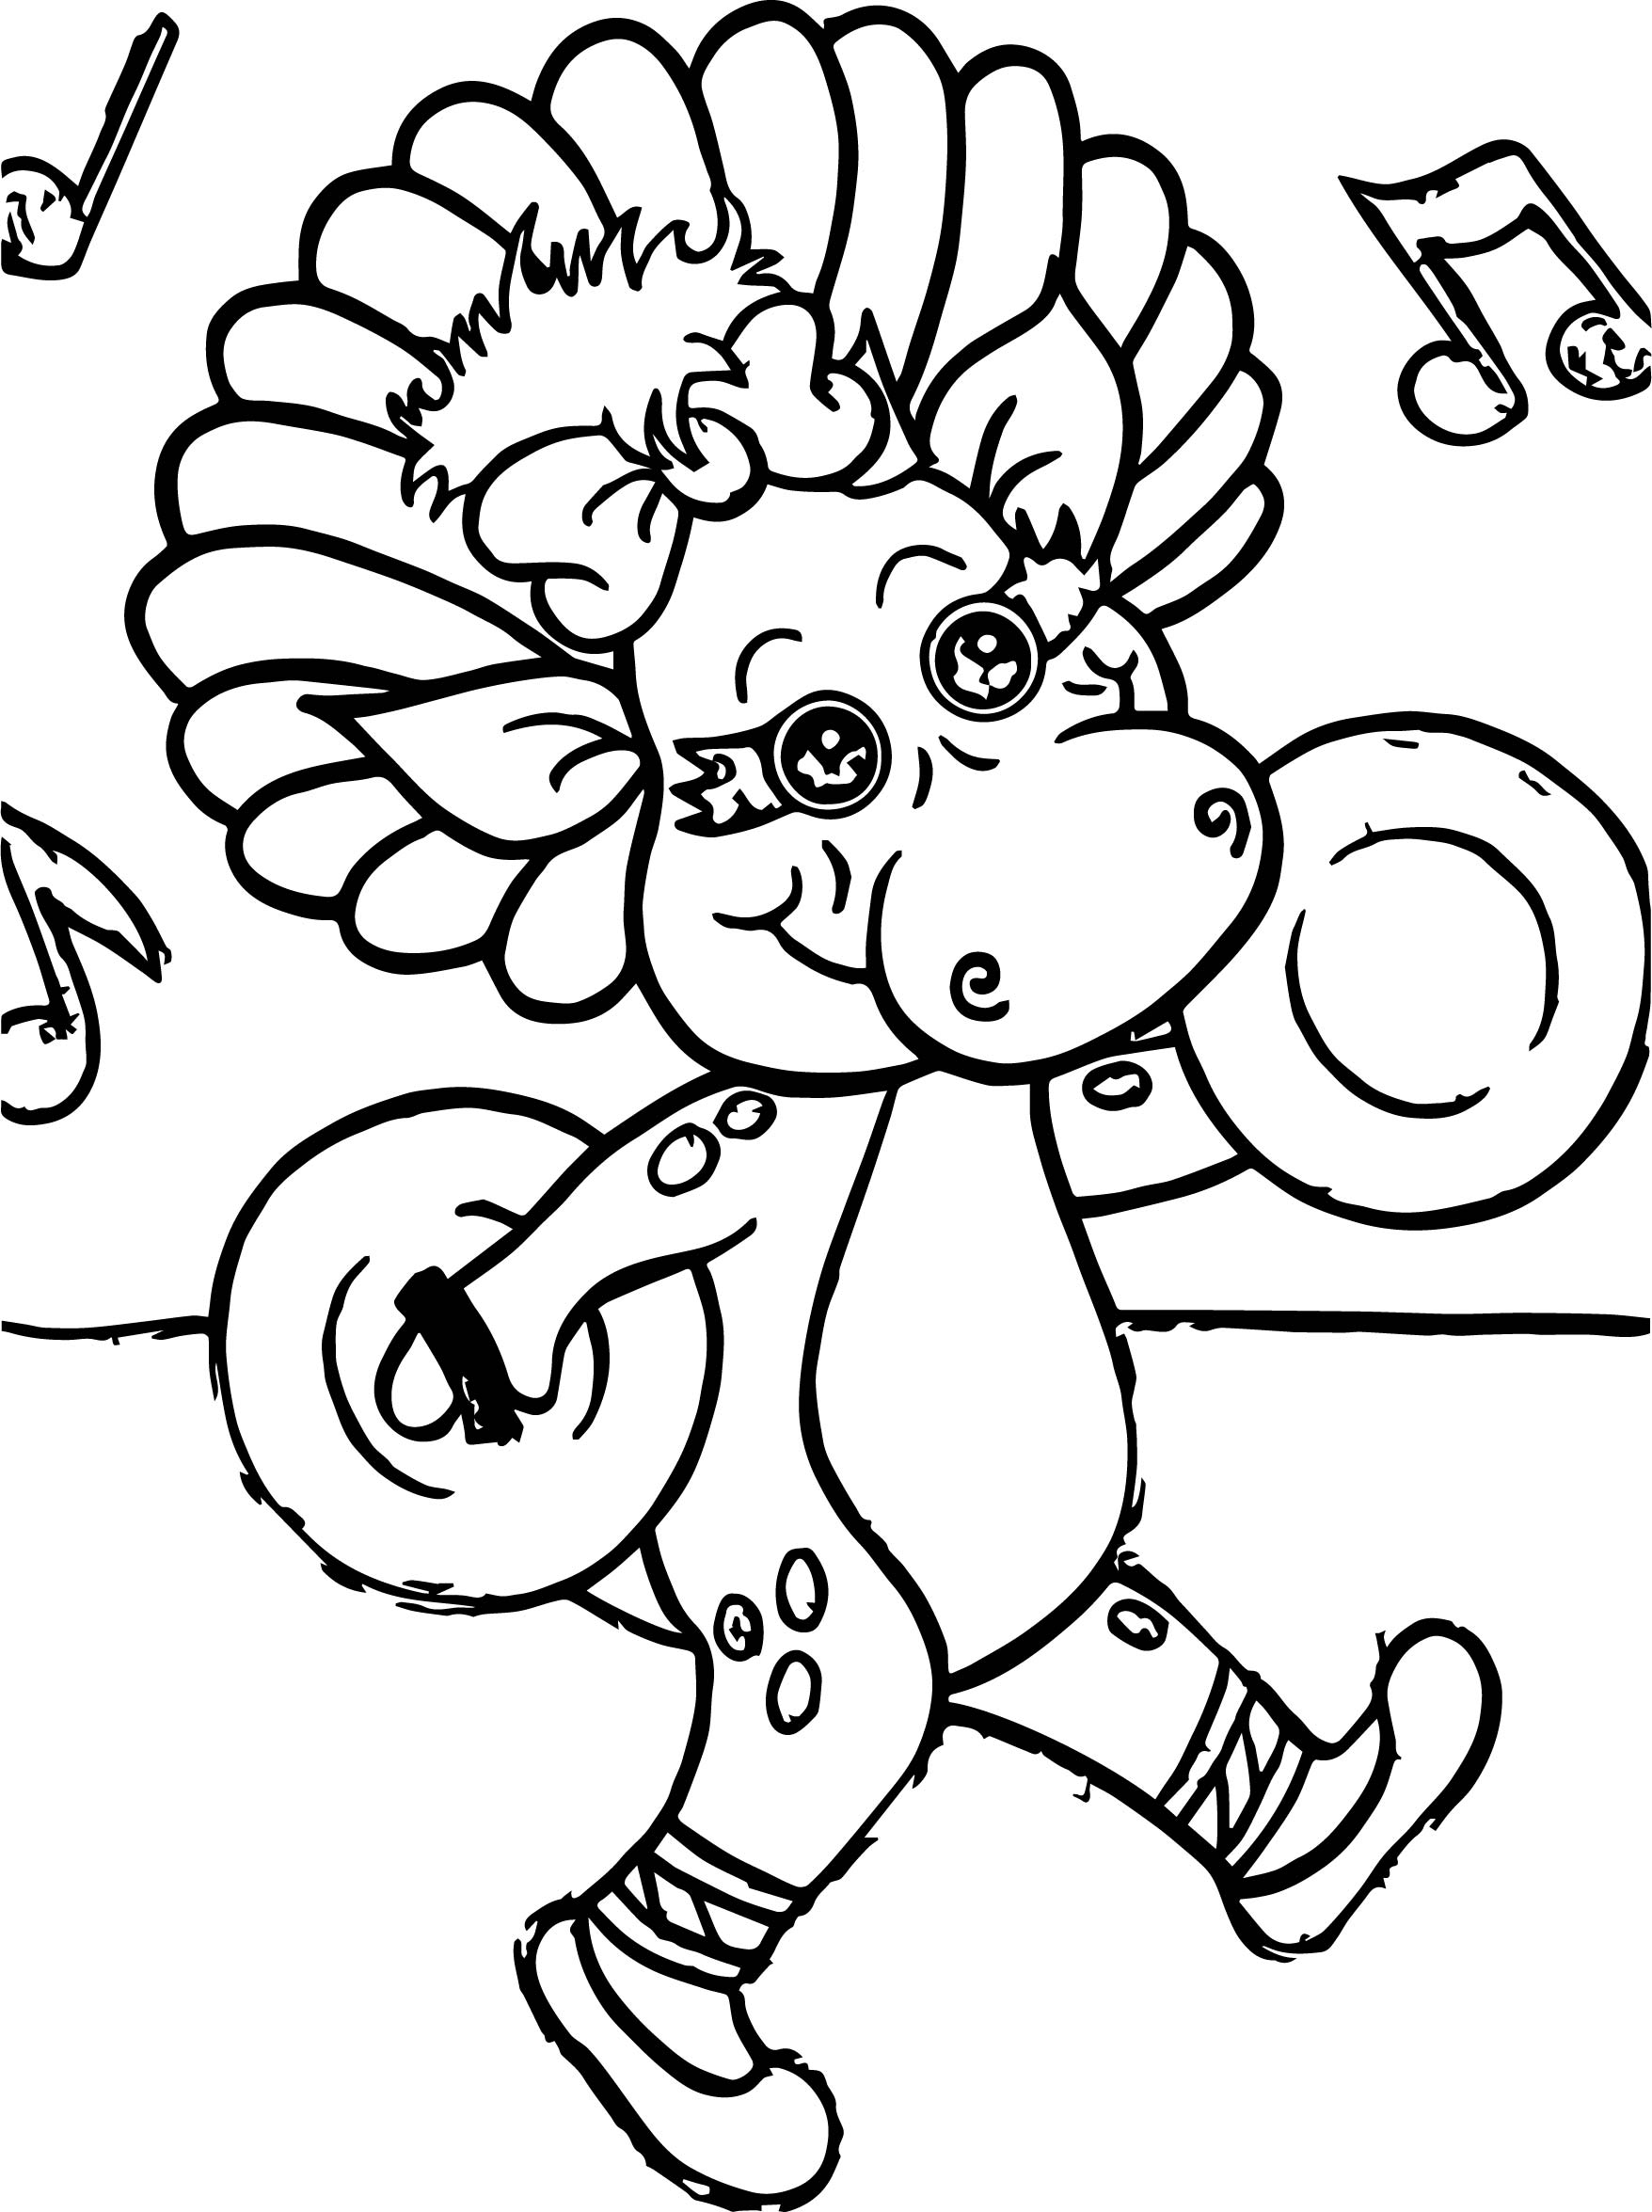 Baby Bop Likes To Make Music Coloring Page